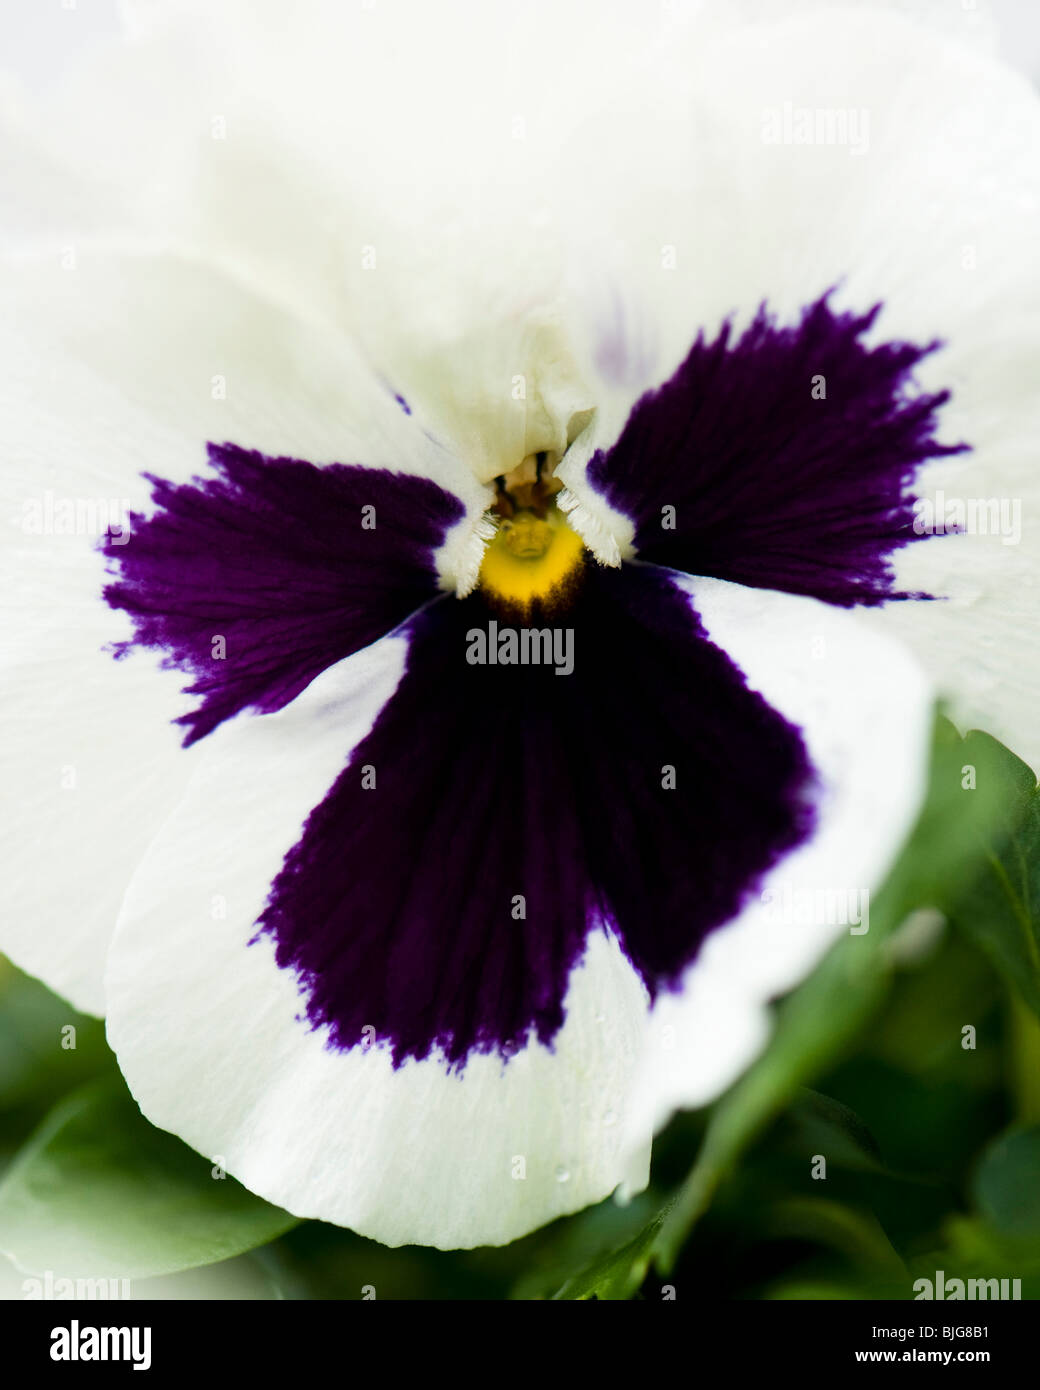 Close up of a Pansy White Blotch, Viola x wittrockiana, in flower - Stock Image